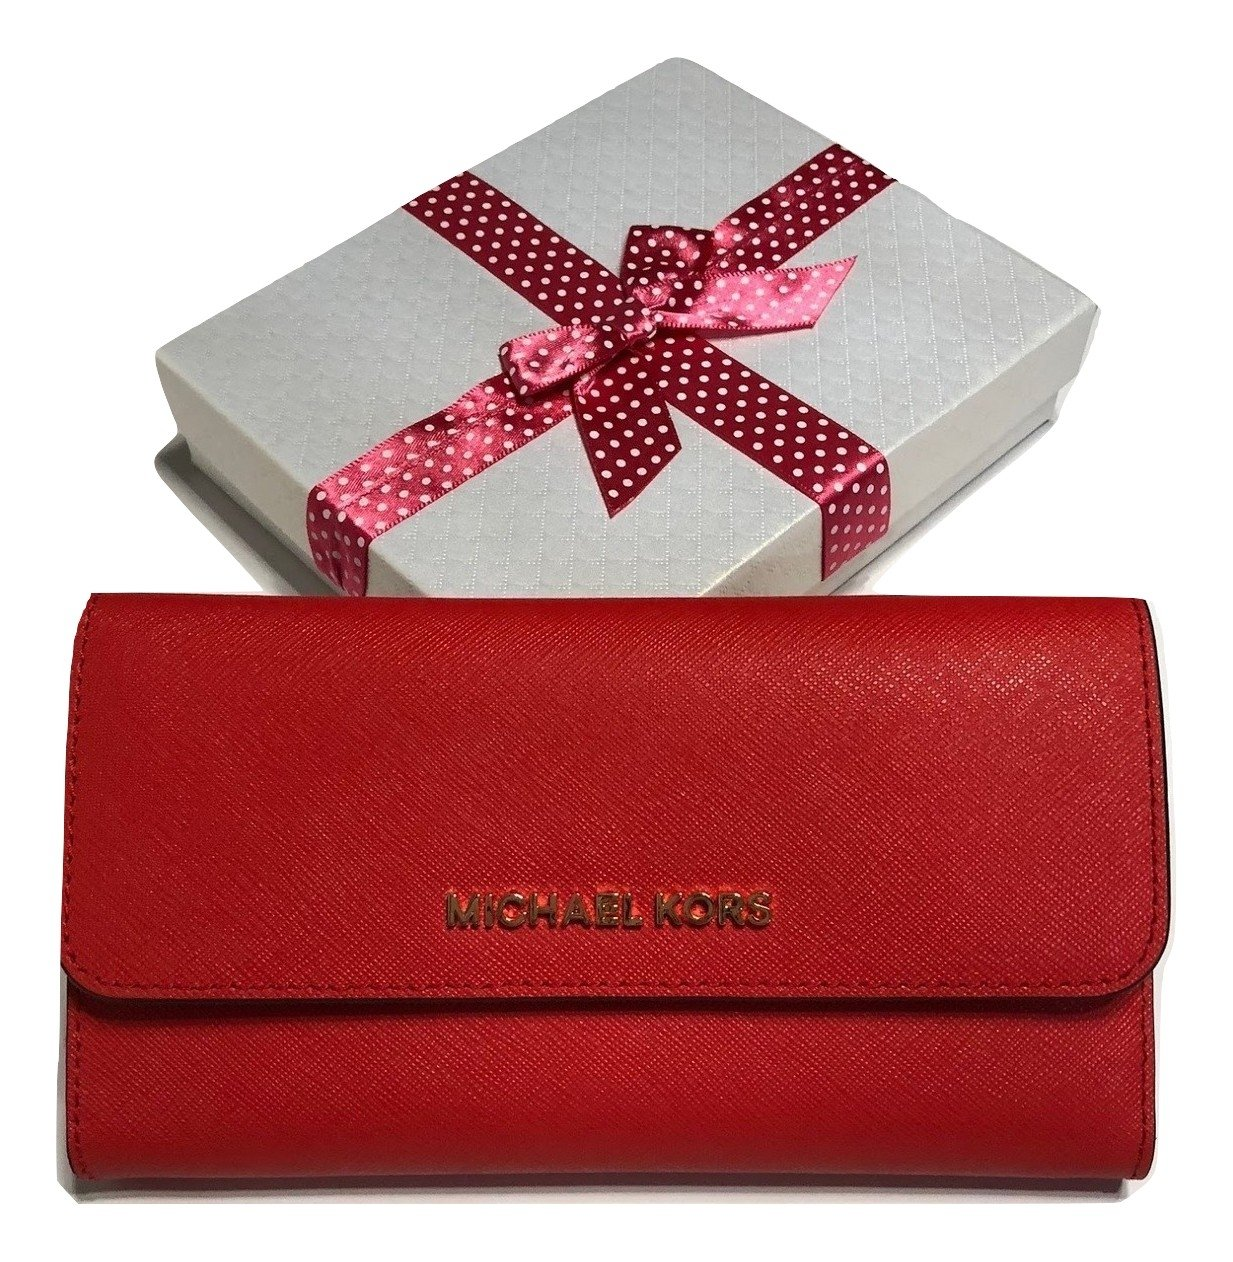 Michael Kors Jet Set Travel Large Trifold Wallet Saffiano Leather (DK Sangria)